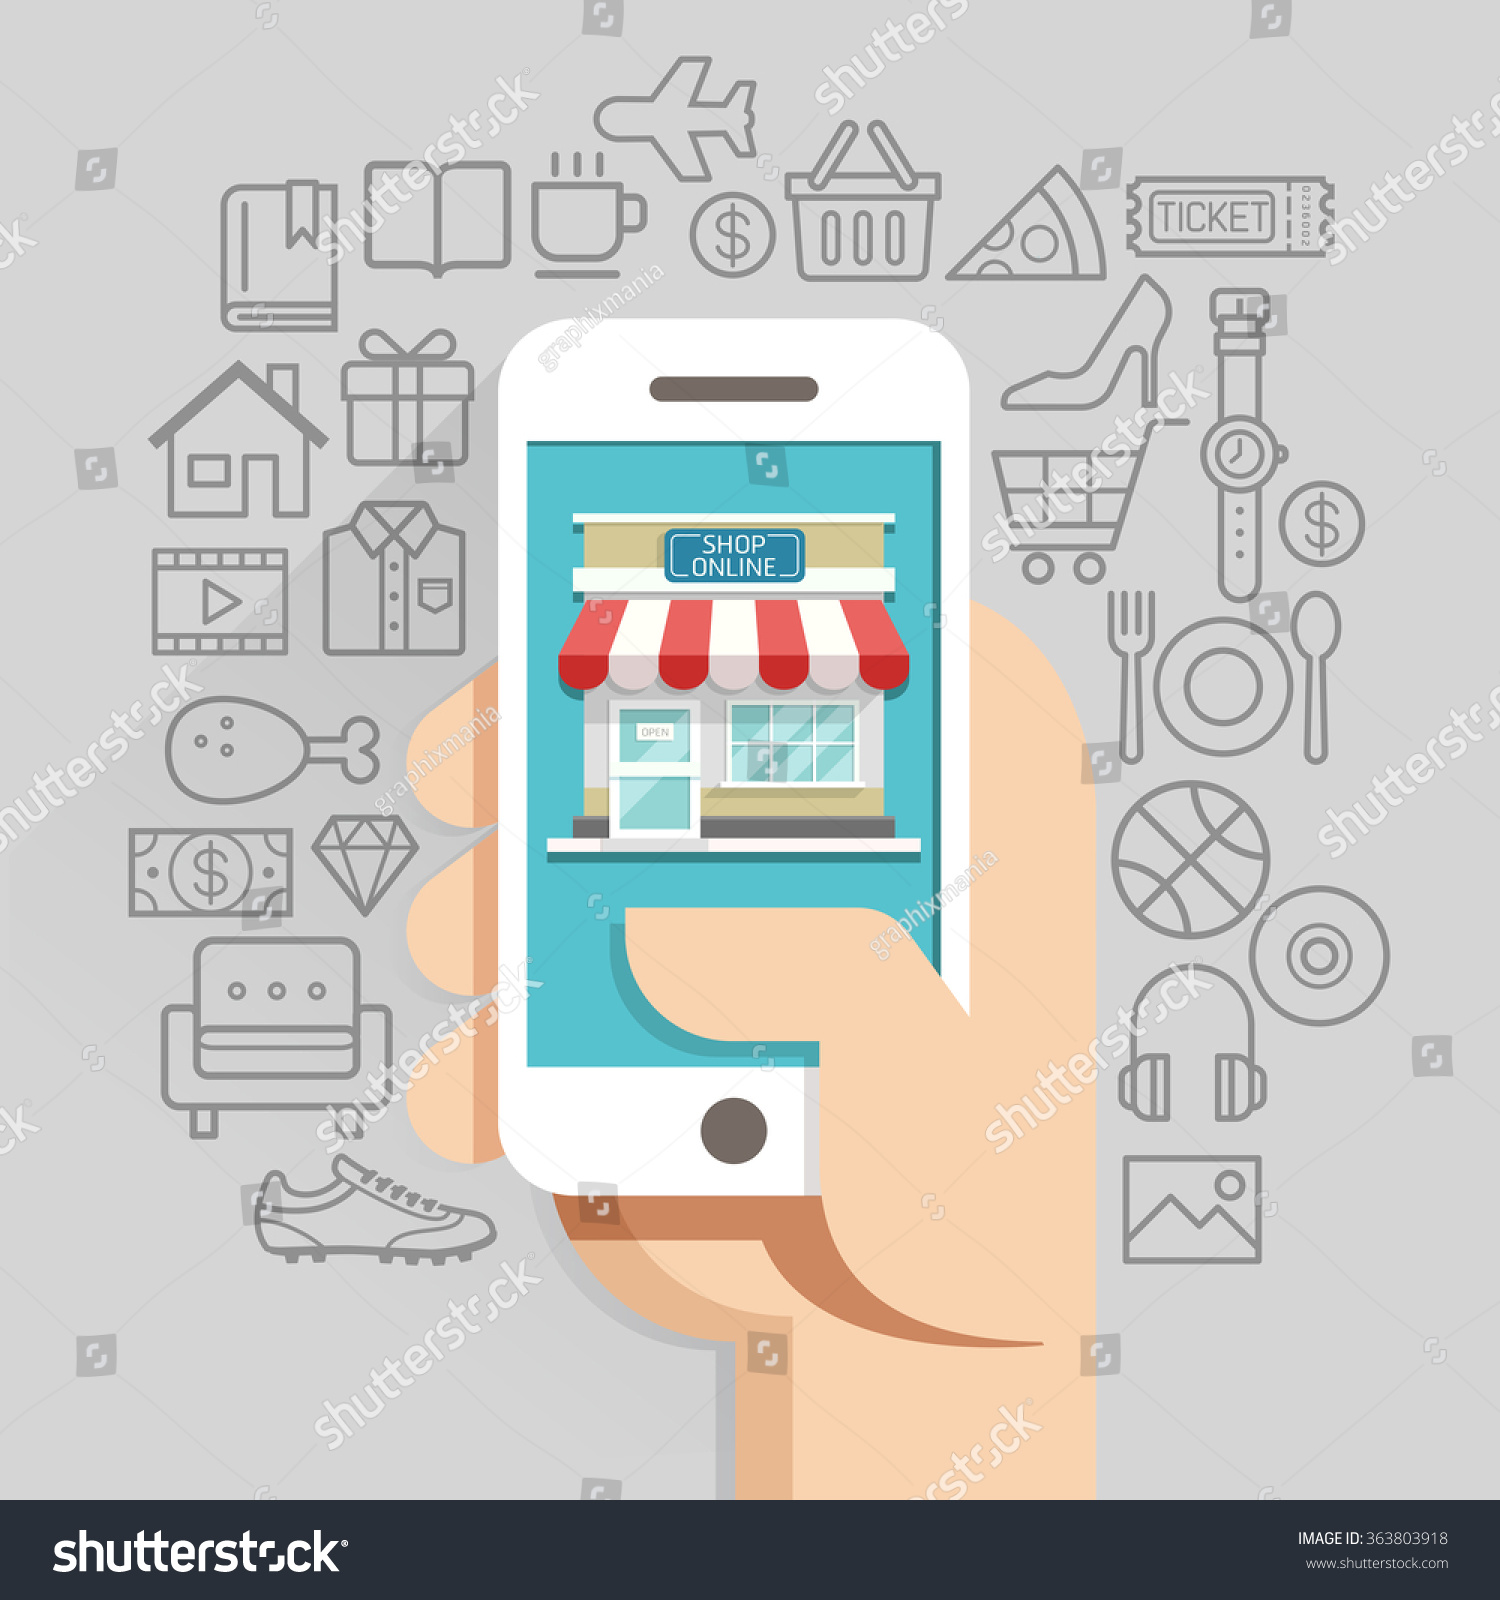 Shopping Online Business Conceptual Flat Style Stock Vector ...